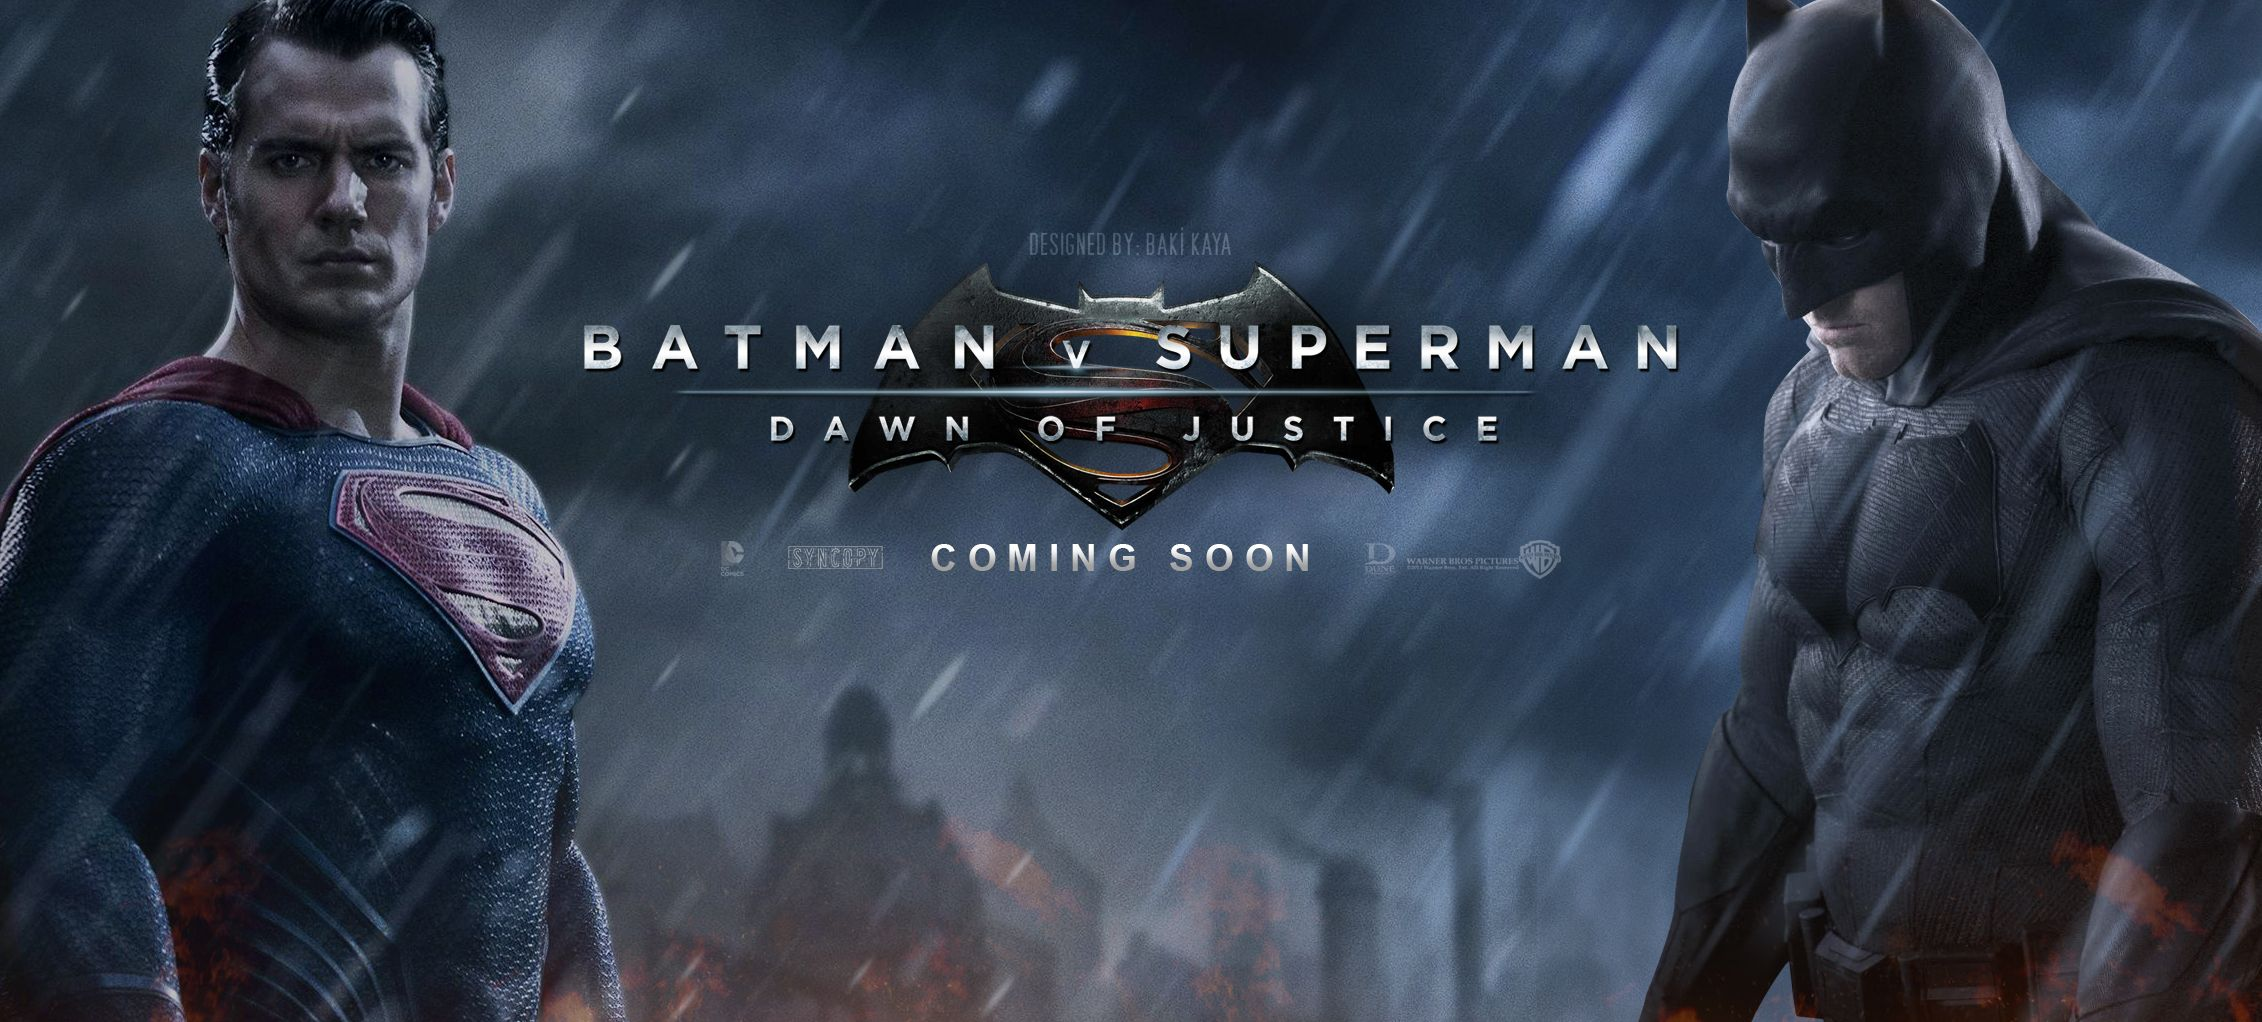 The Batmobile Spotted On The Batman V Superman Dawn Of Justice